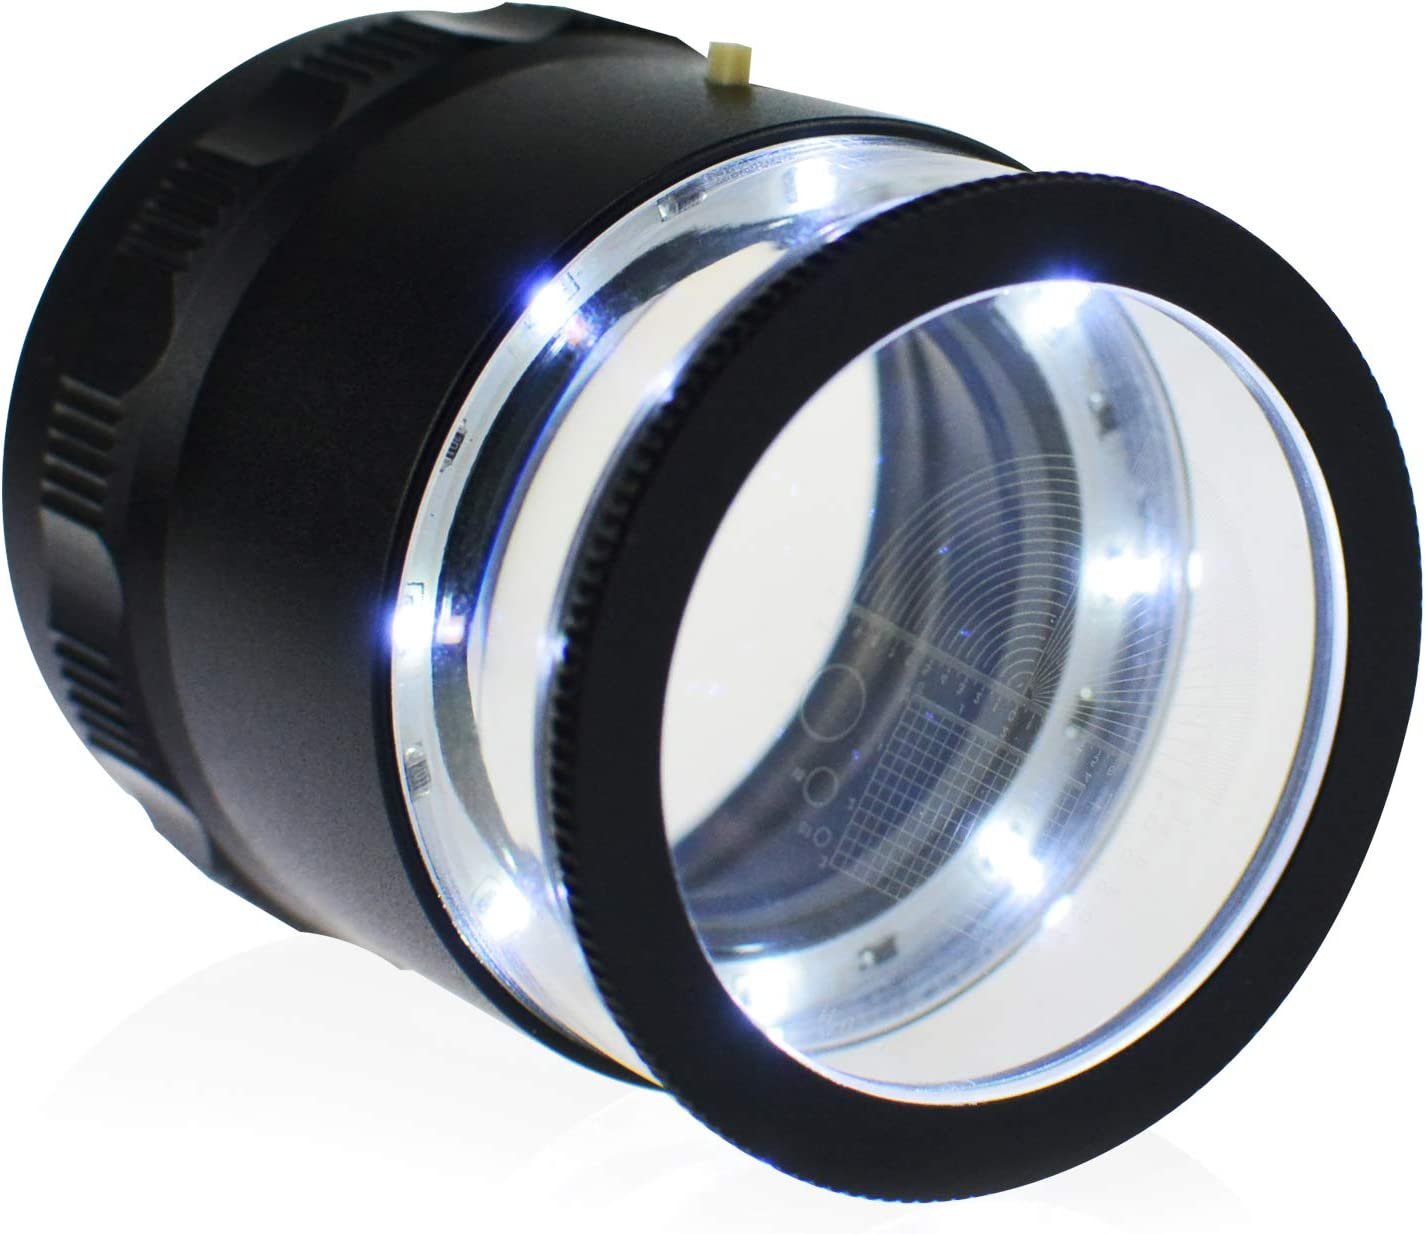 10X Illuminated Jewelers Loupe Dallas Mall with Magnifier Save money Re Interchangeable